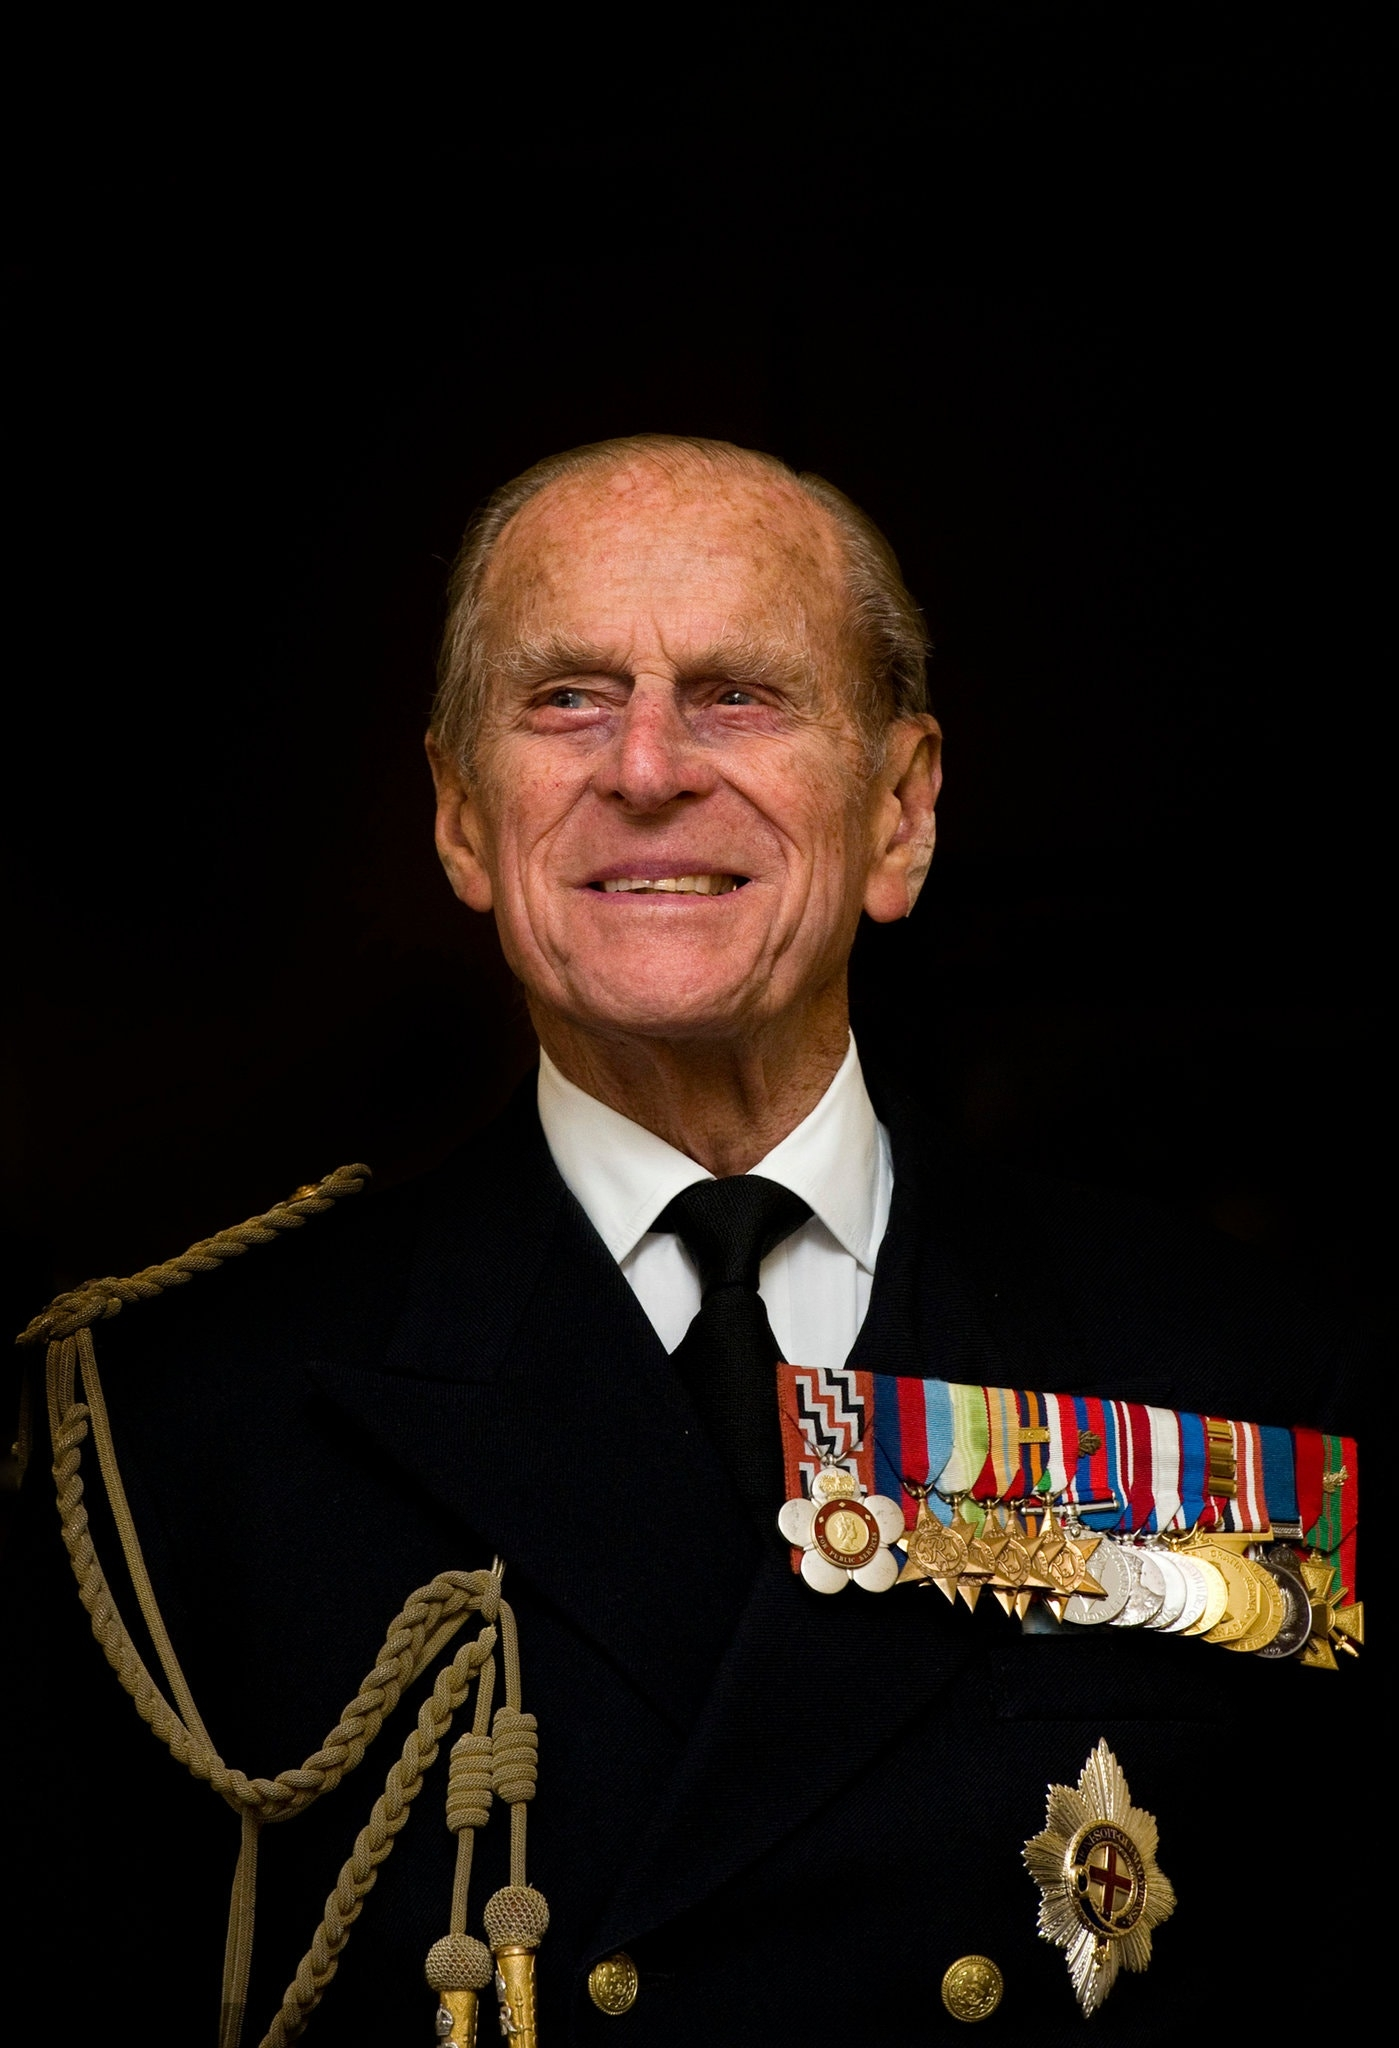 World breaking news today (April 10): World's leaders react to Prince Philip's death